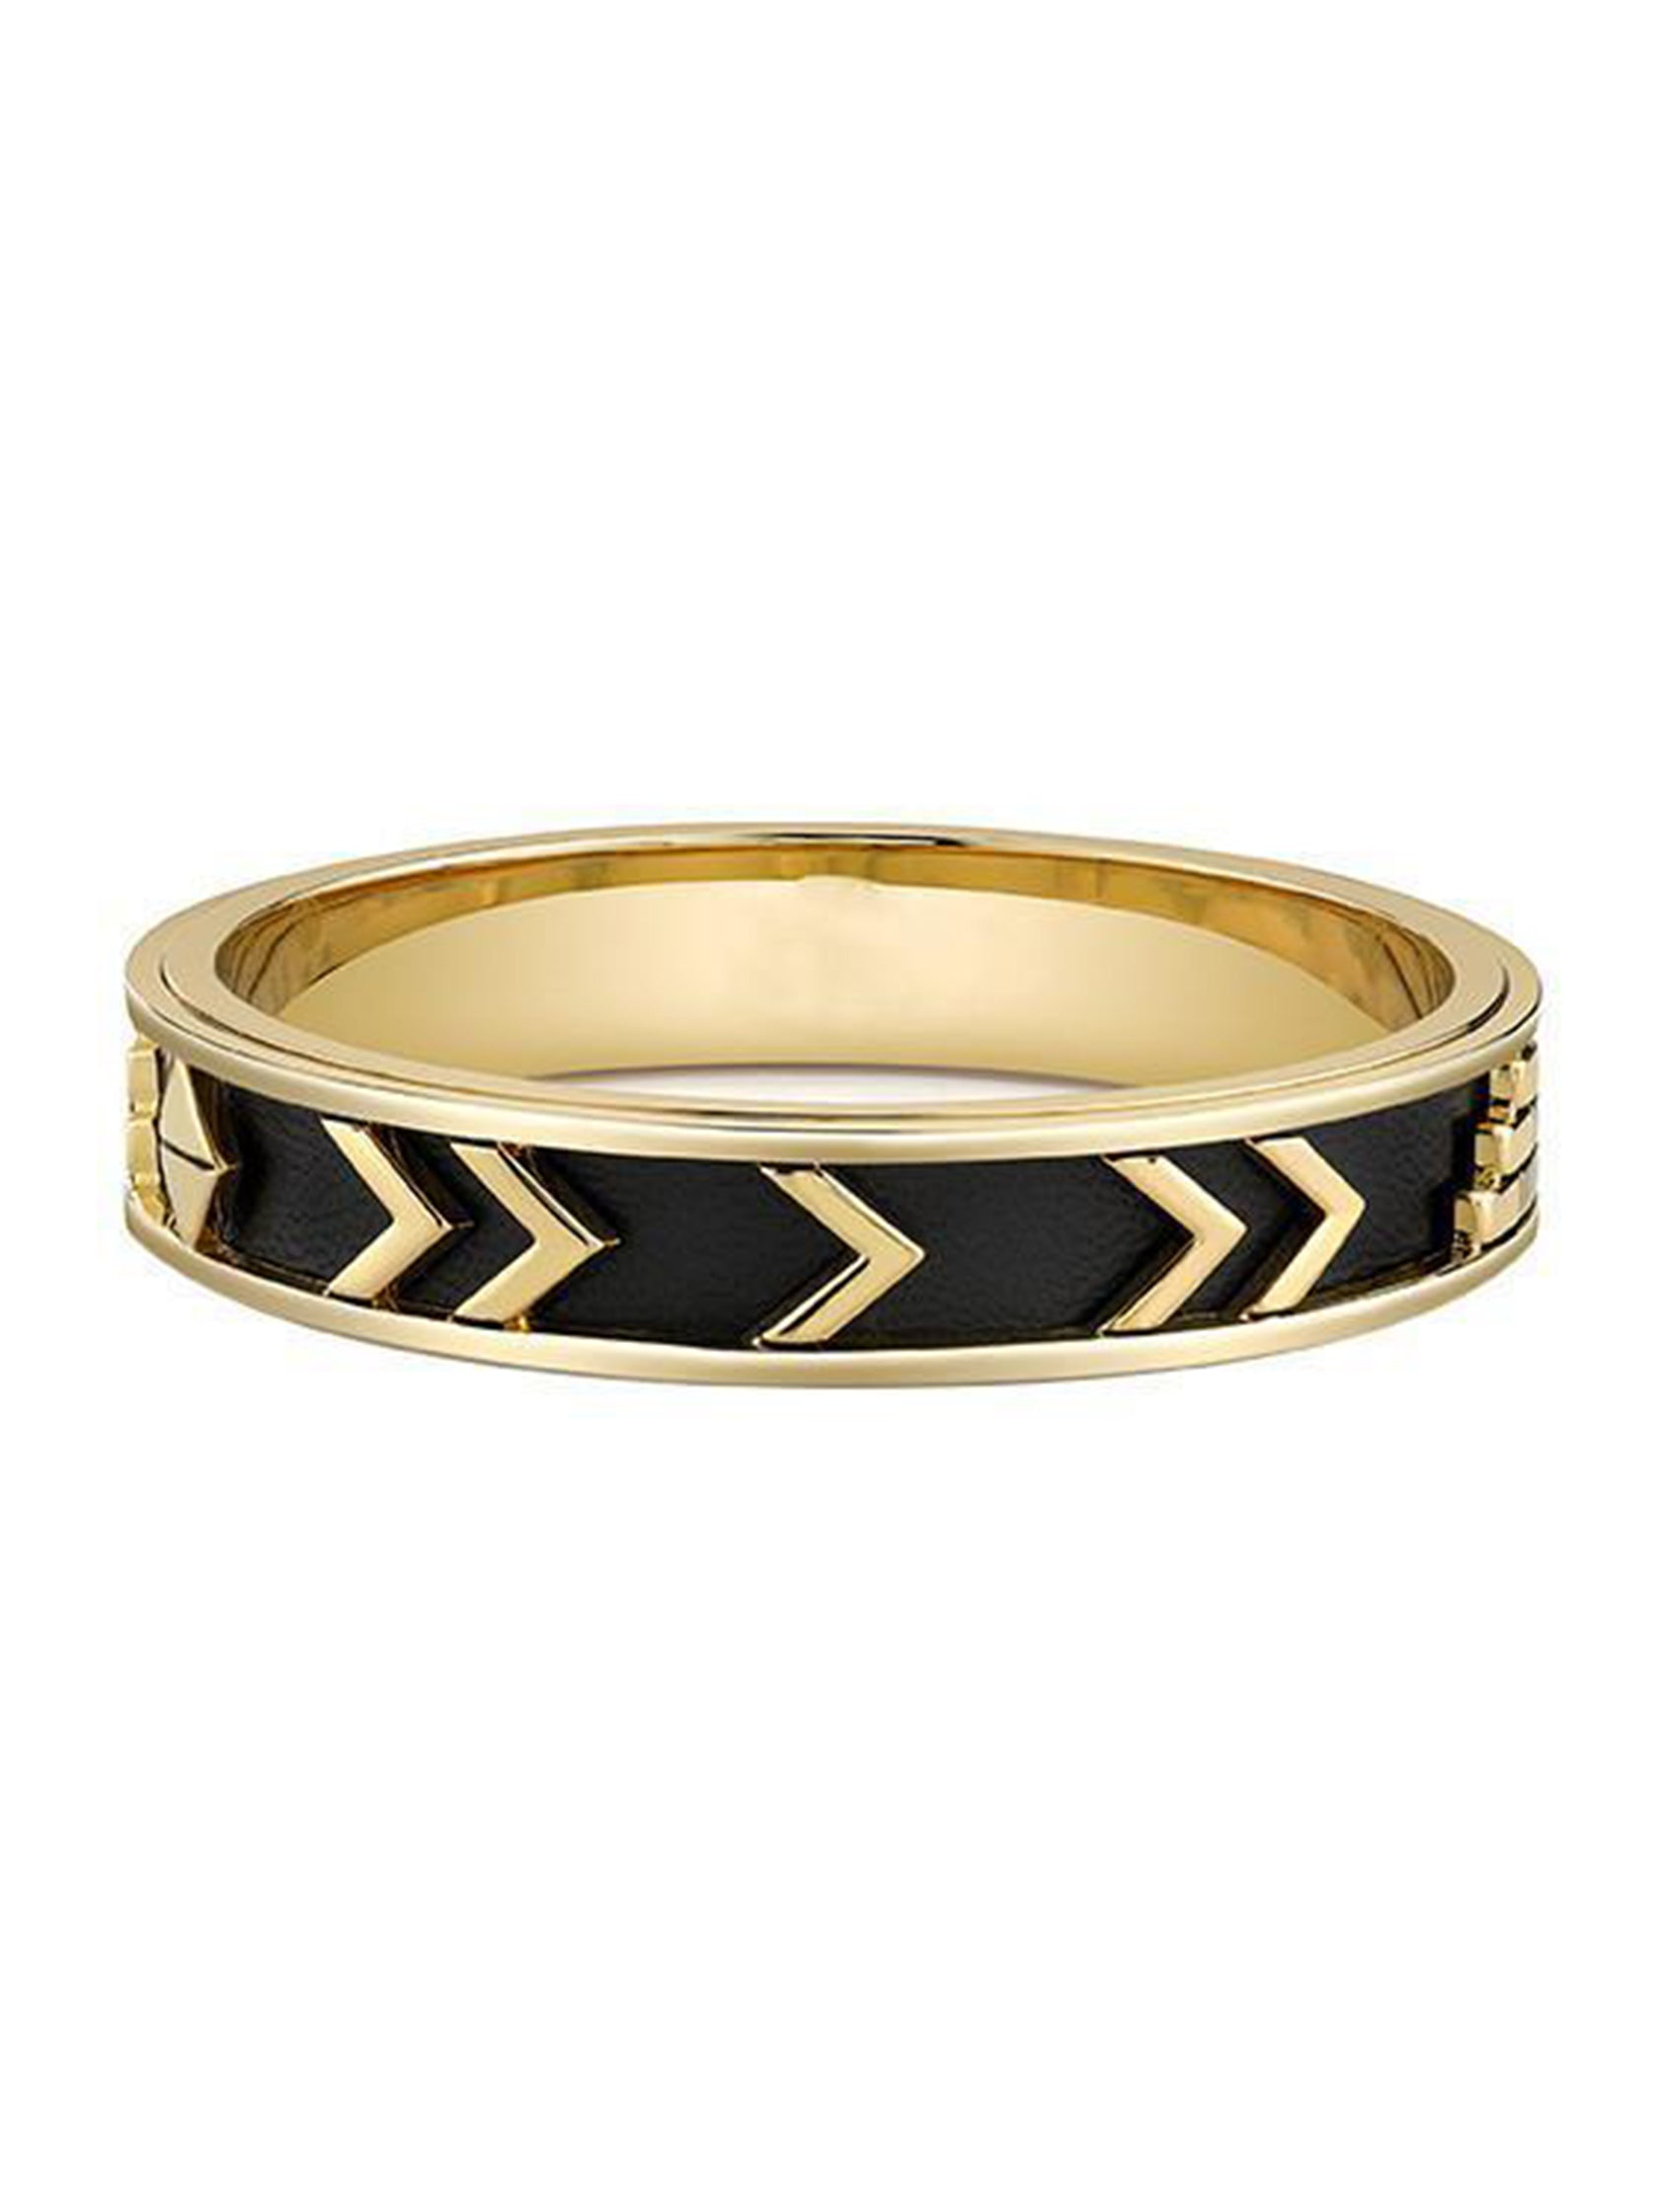 Women outfit in a bracelet rental from House of Harlow 1960 called Aztec Bangle